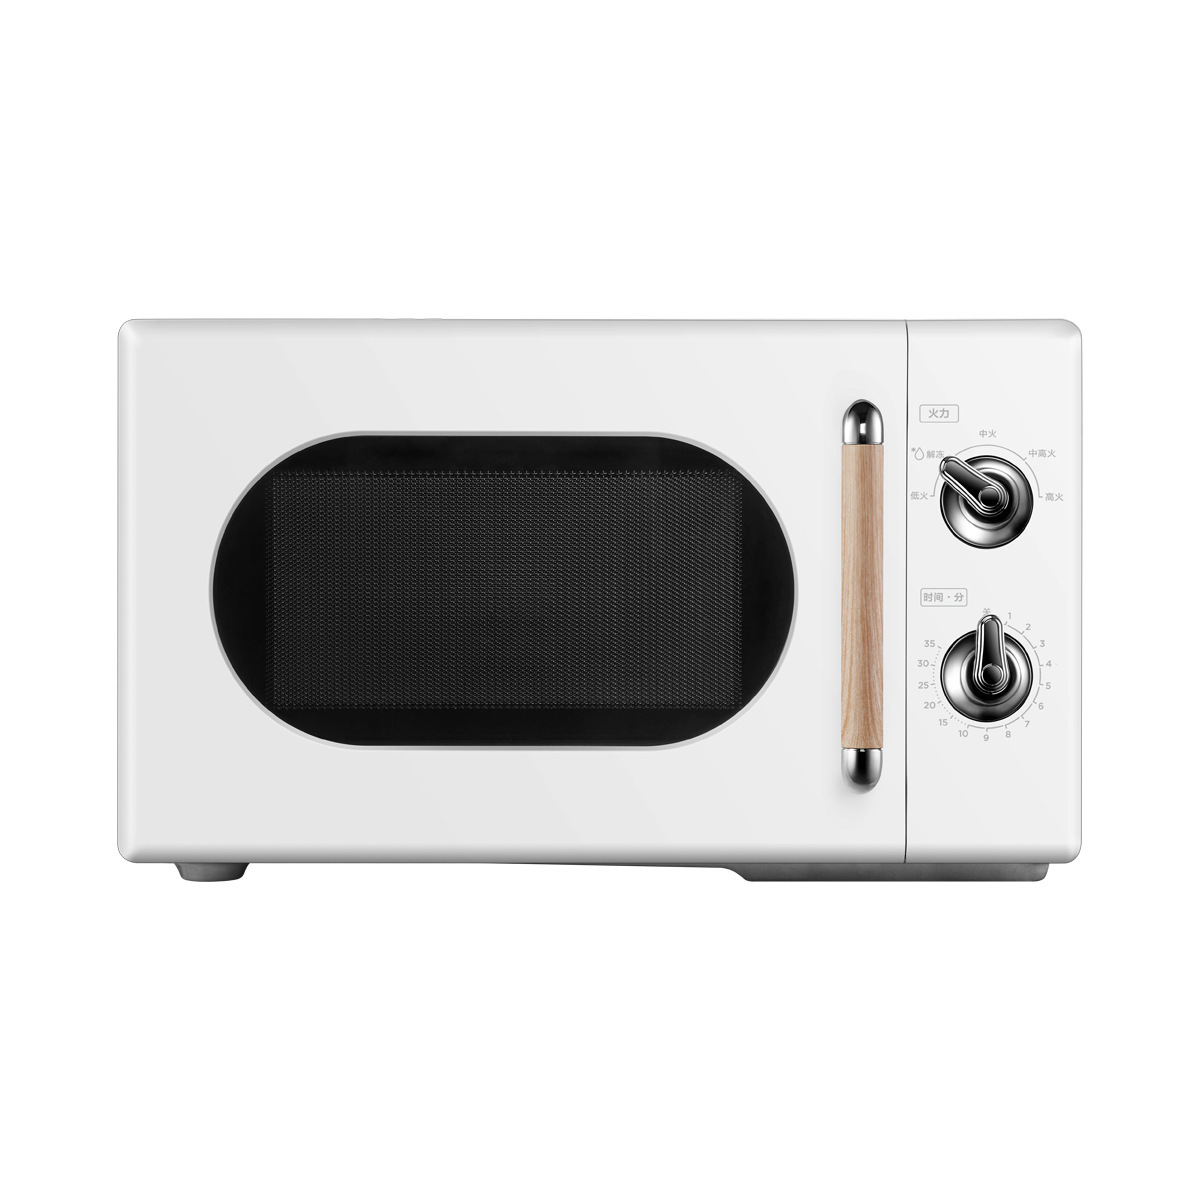 Midea microwave oven pm2004 retro knob dual control microwave oven 360 ° turntable heating 20 l pm20